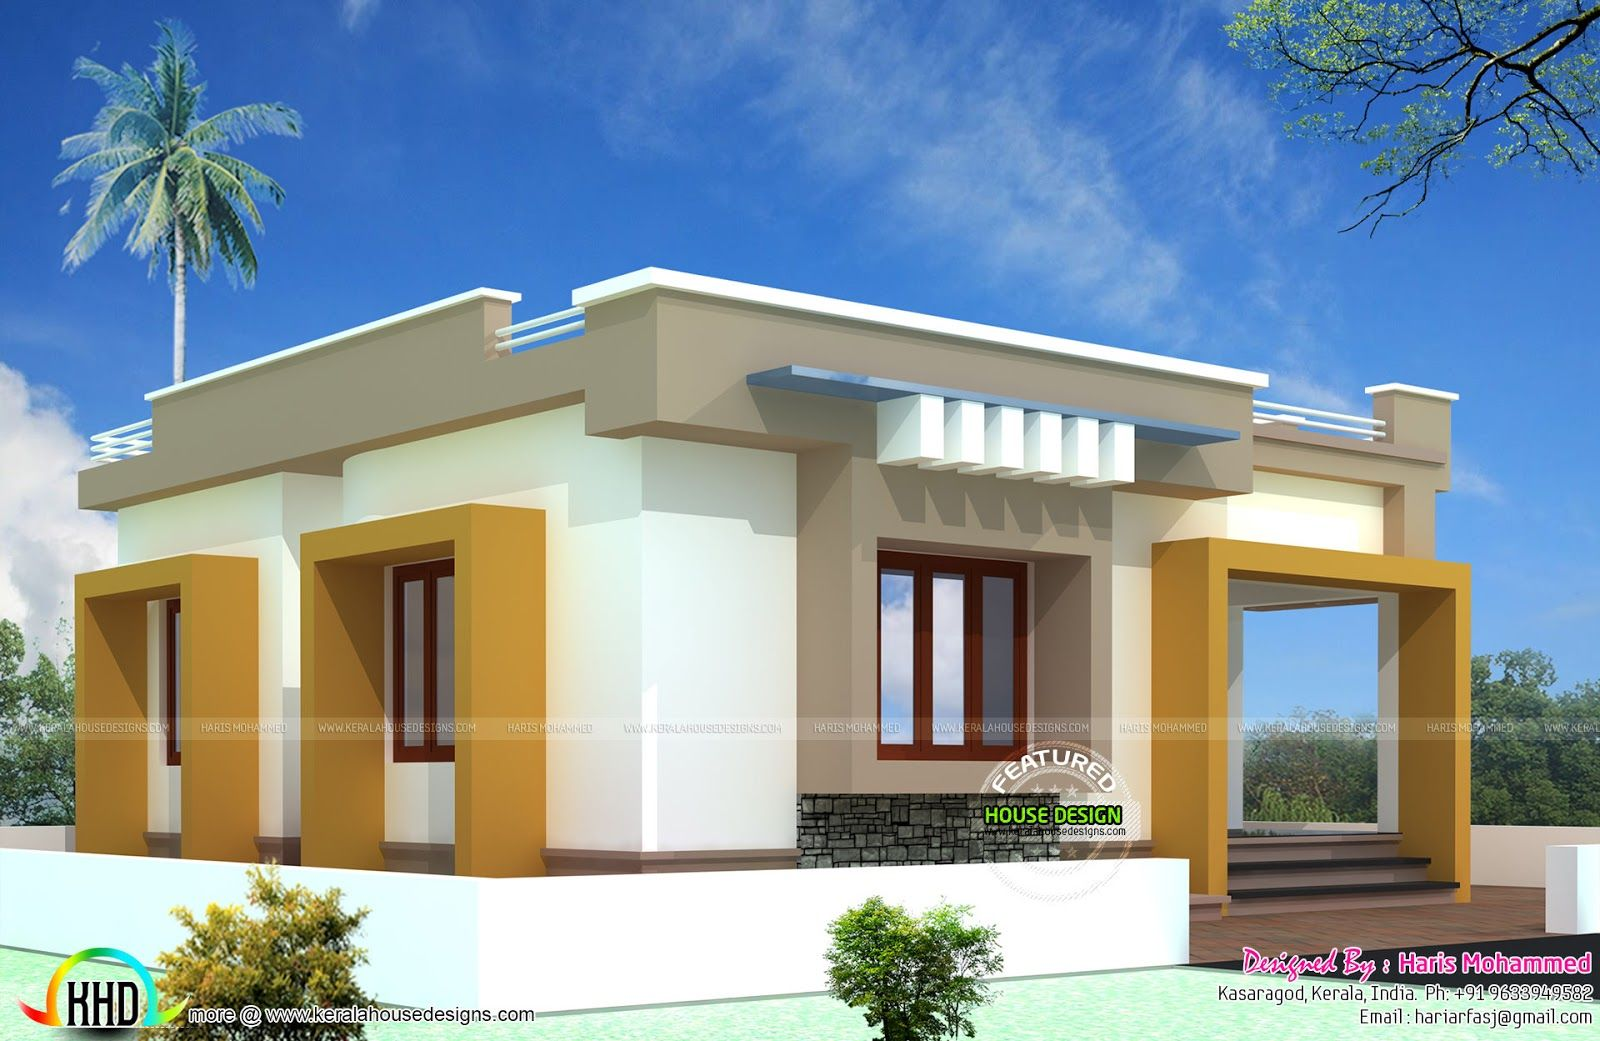 u20b910 lakhs budget smallbudget single floor house in an area of 812 square  feet by Haris Mohammed, Kasaragod, Kerala.